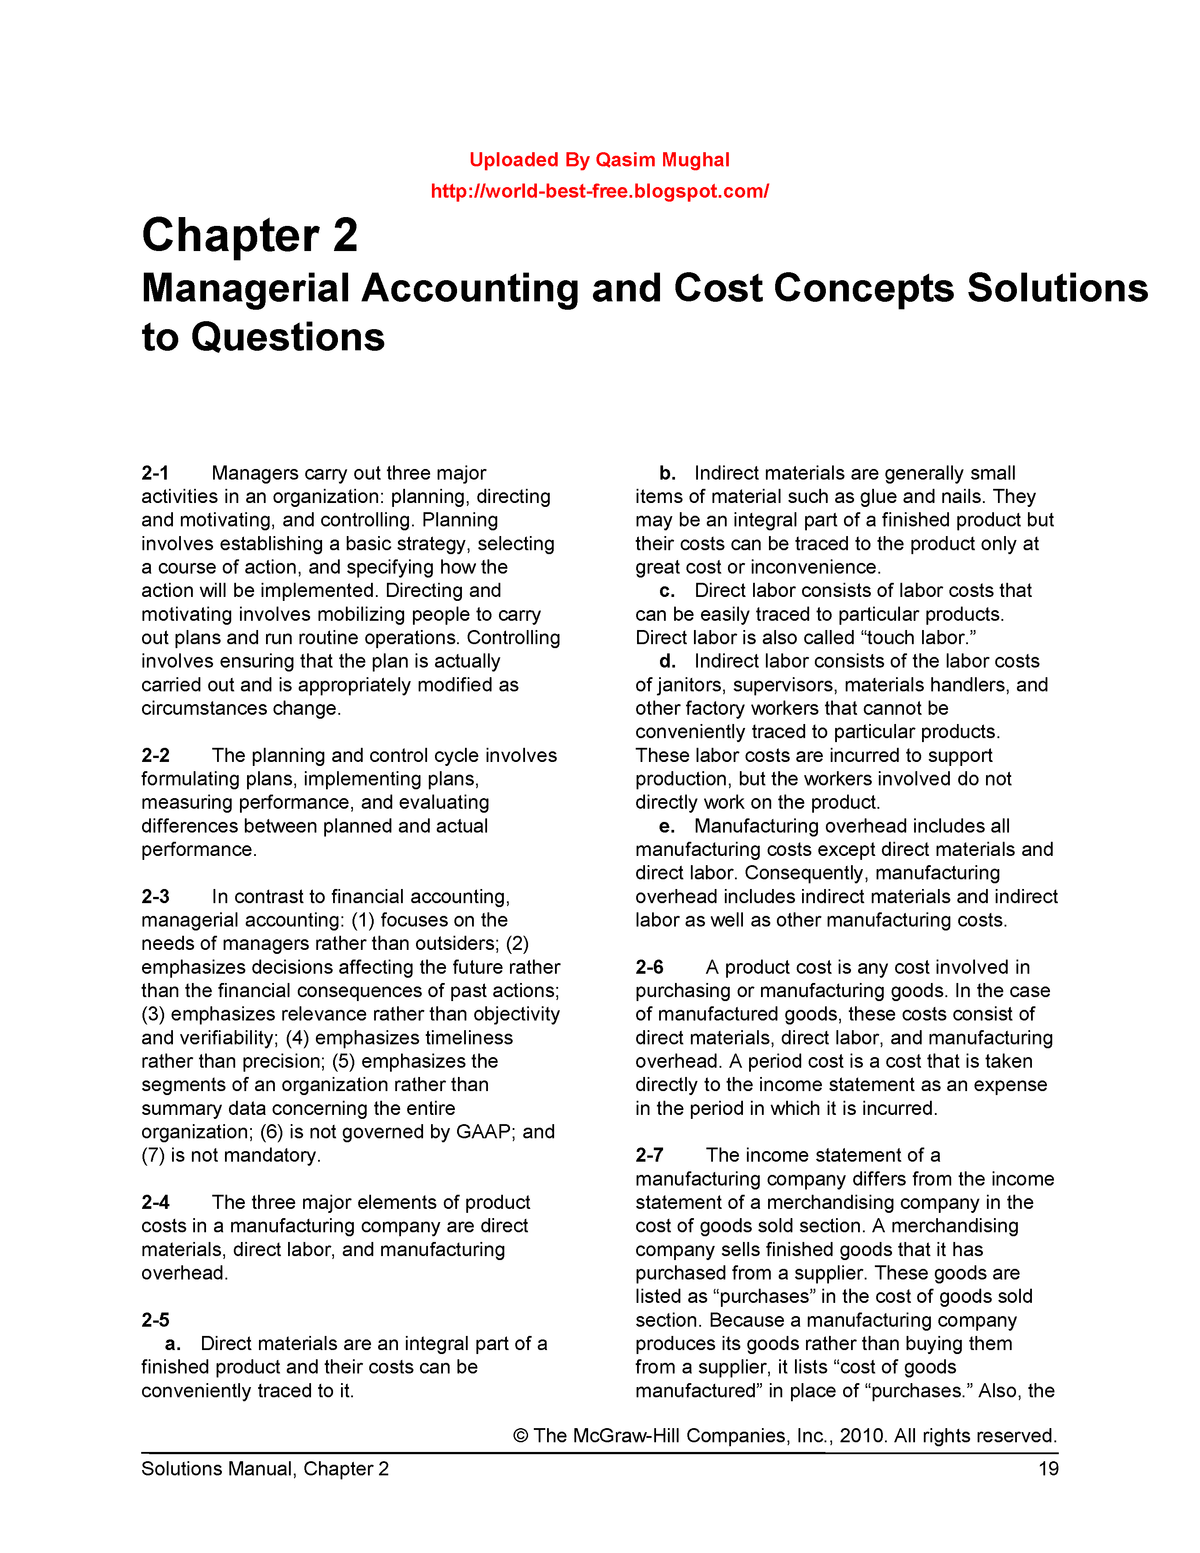 Chap002 - Solution manual Managerial Accounting - LLM 5103